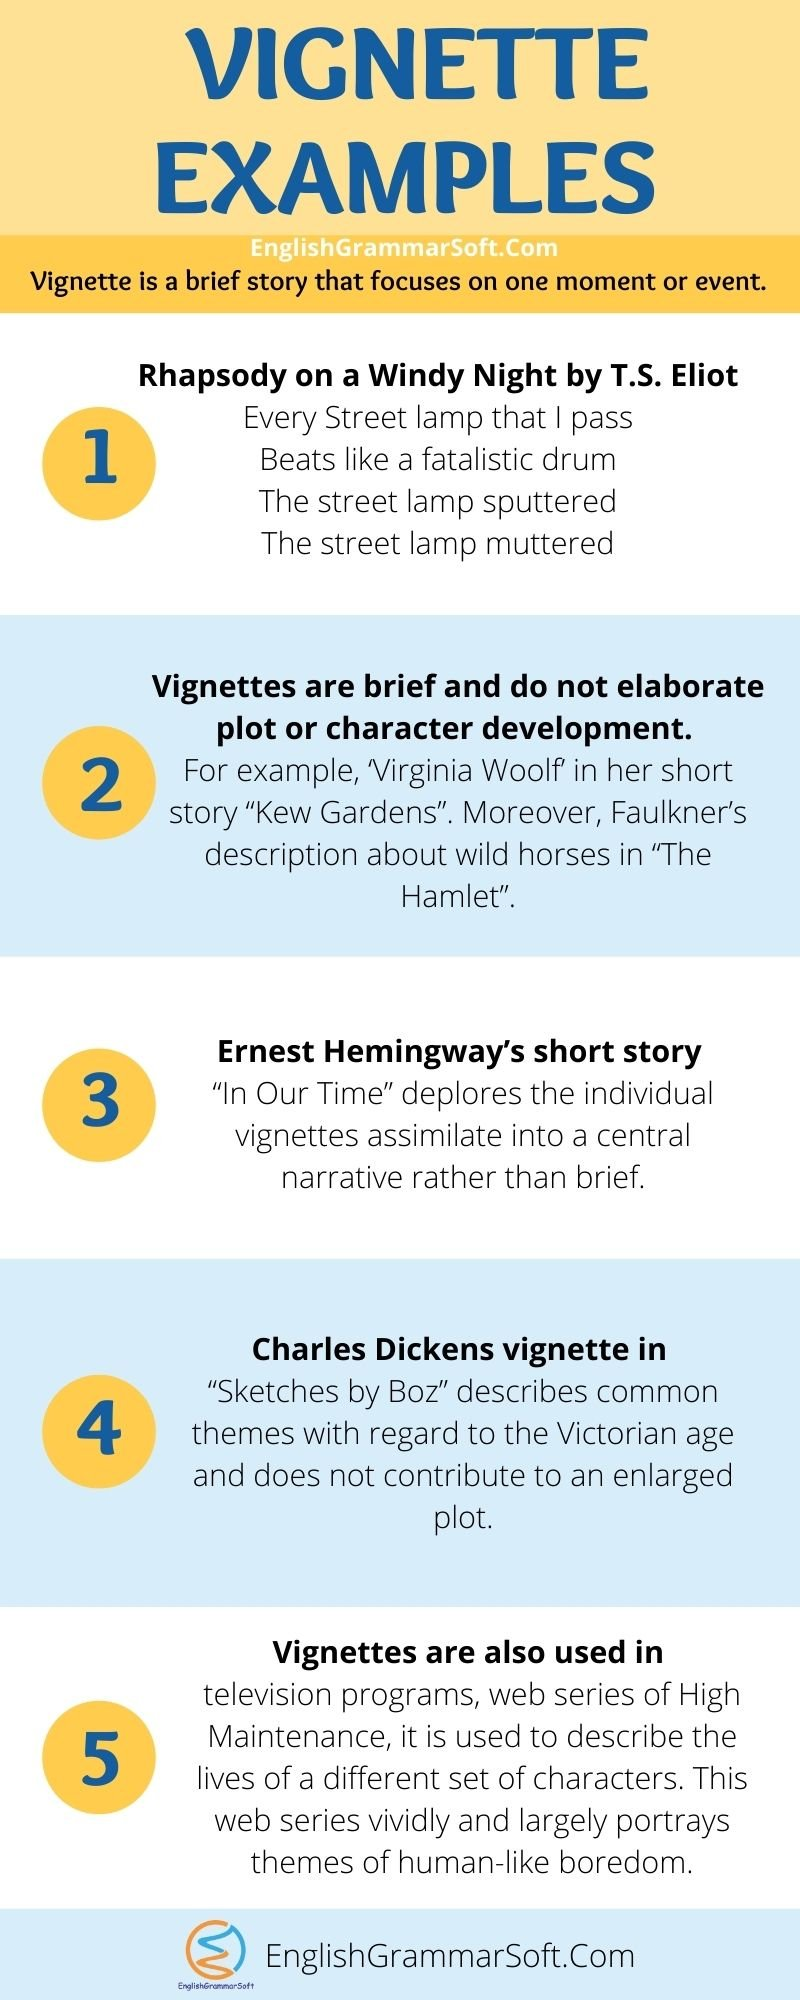 Vignette Examples (Literary Devices)